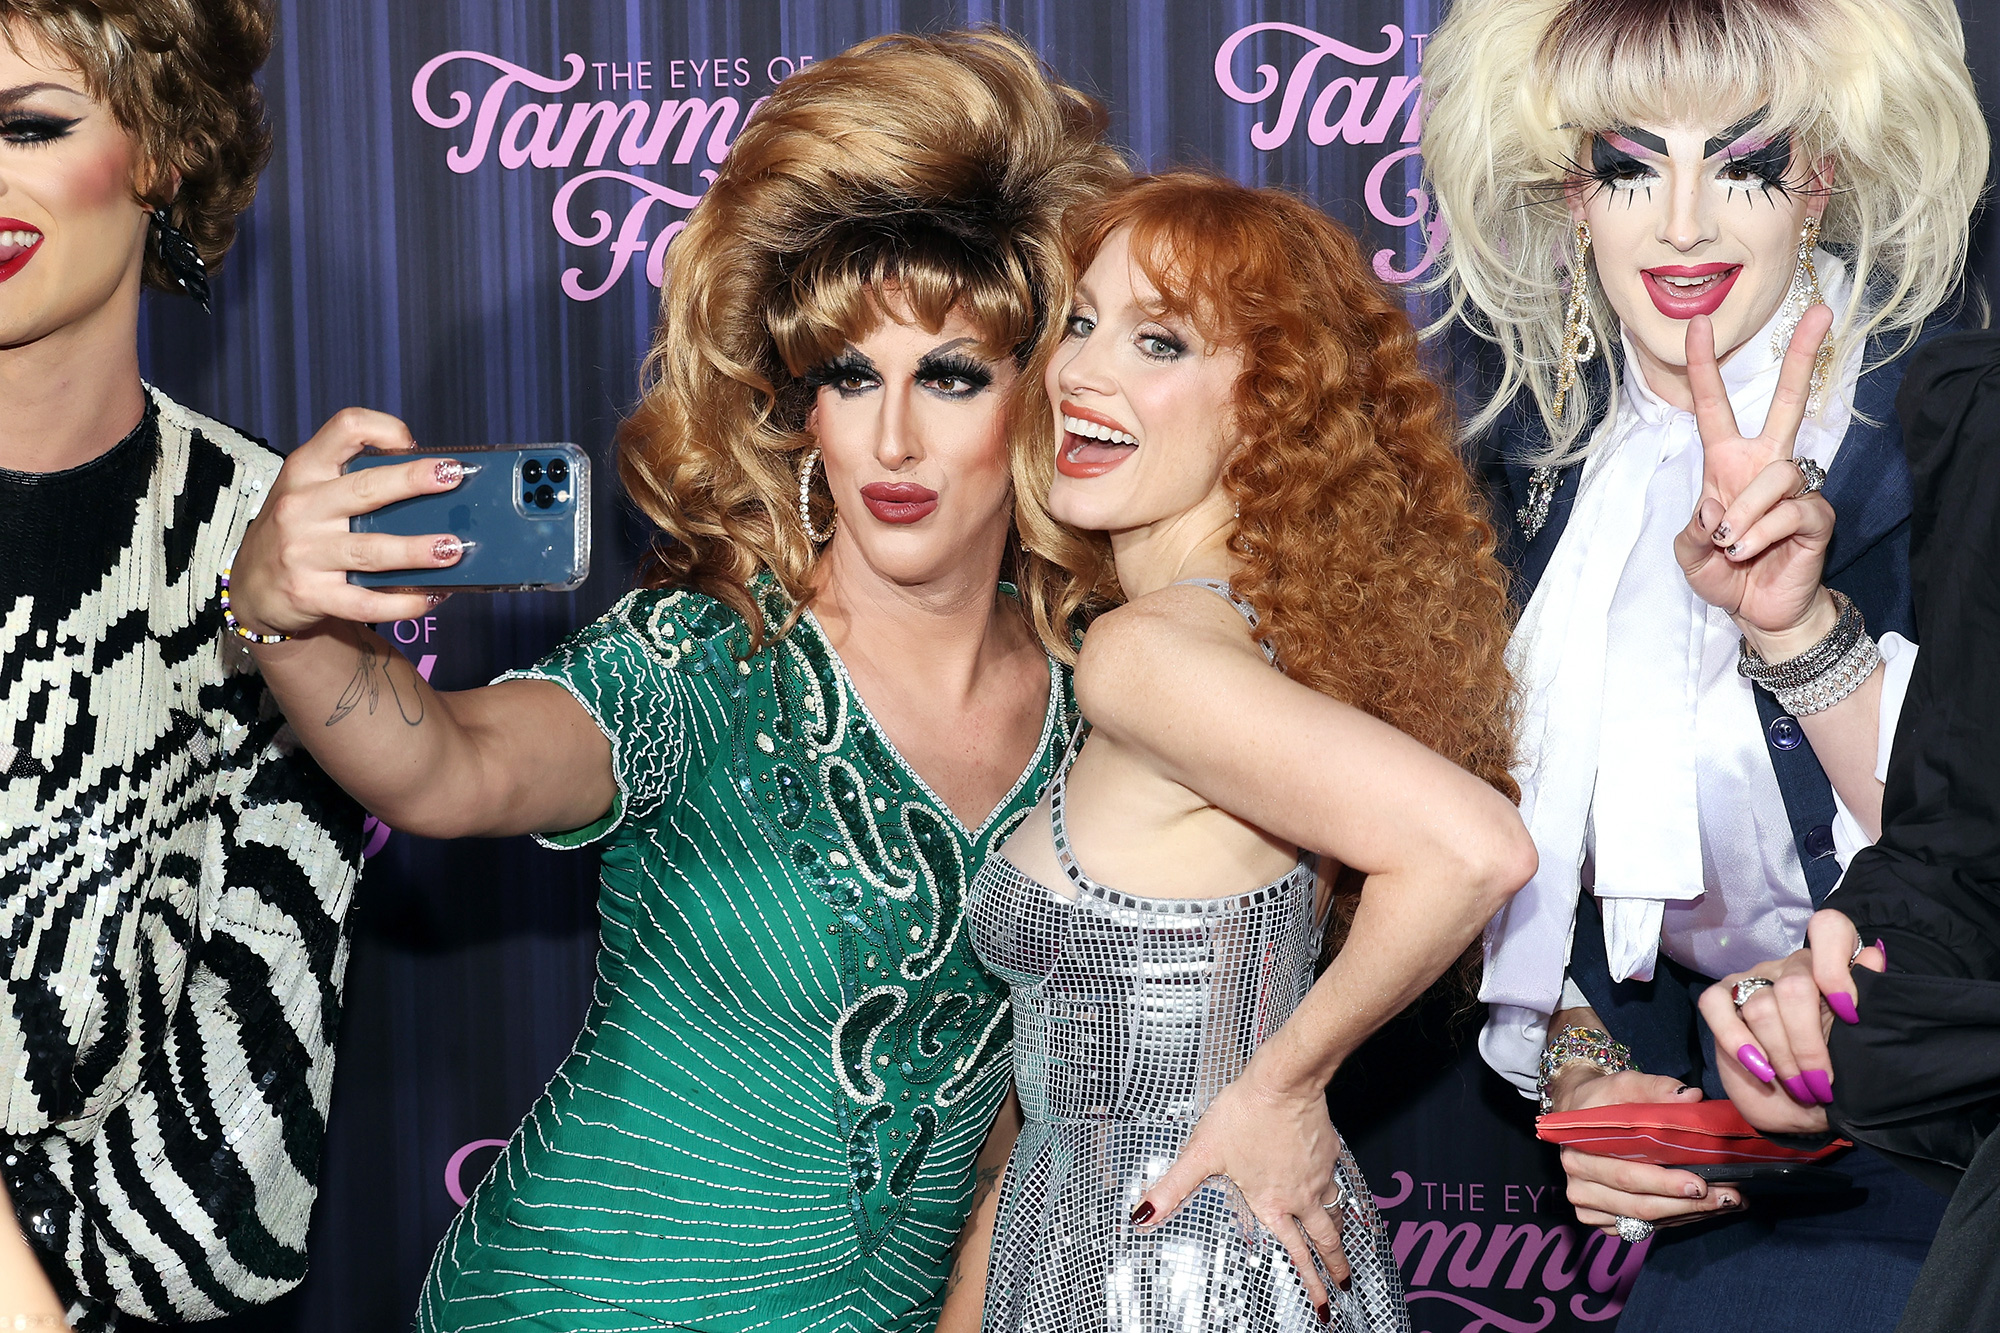 """Jessica Chastain poses for photos with drag queens at the New York premiere for """"The Eyes of Tammy Faye"""" at SVA Theater on September 14, 2021 in New York City"""